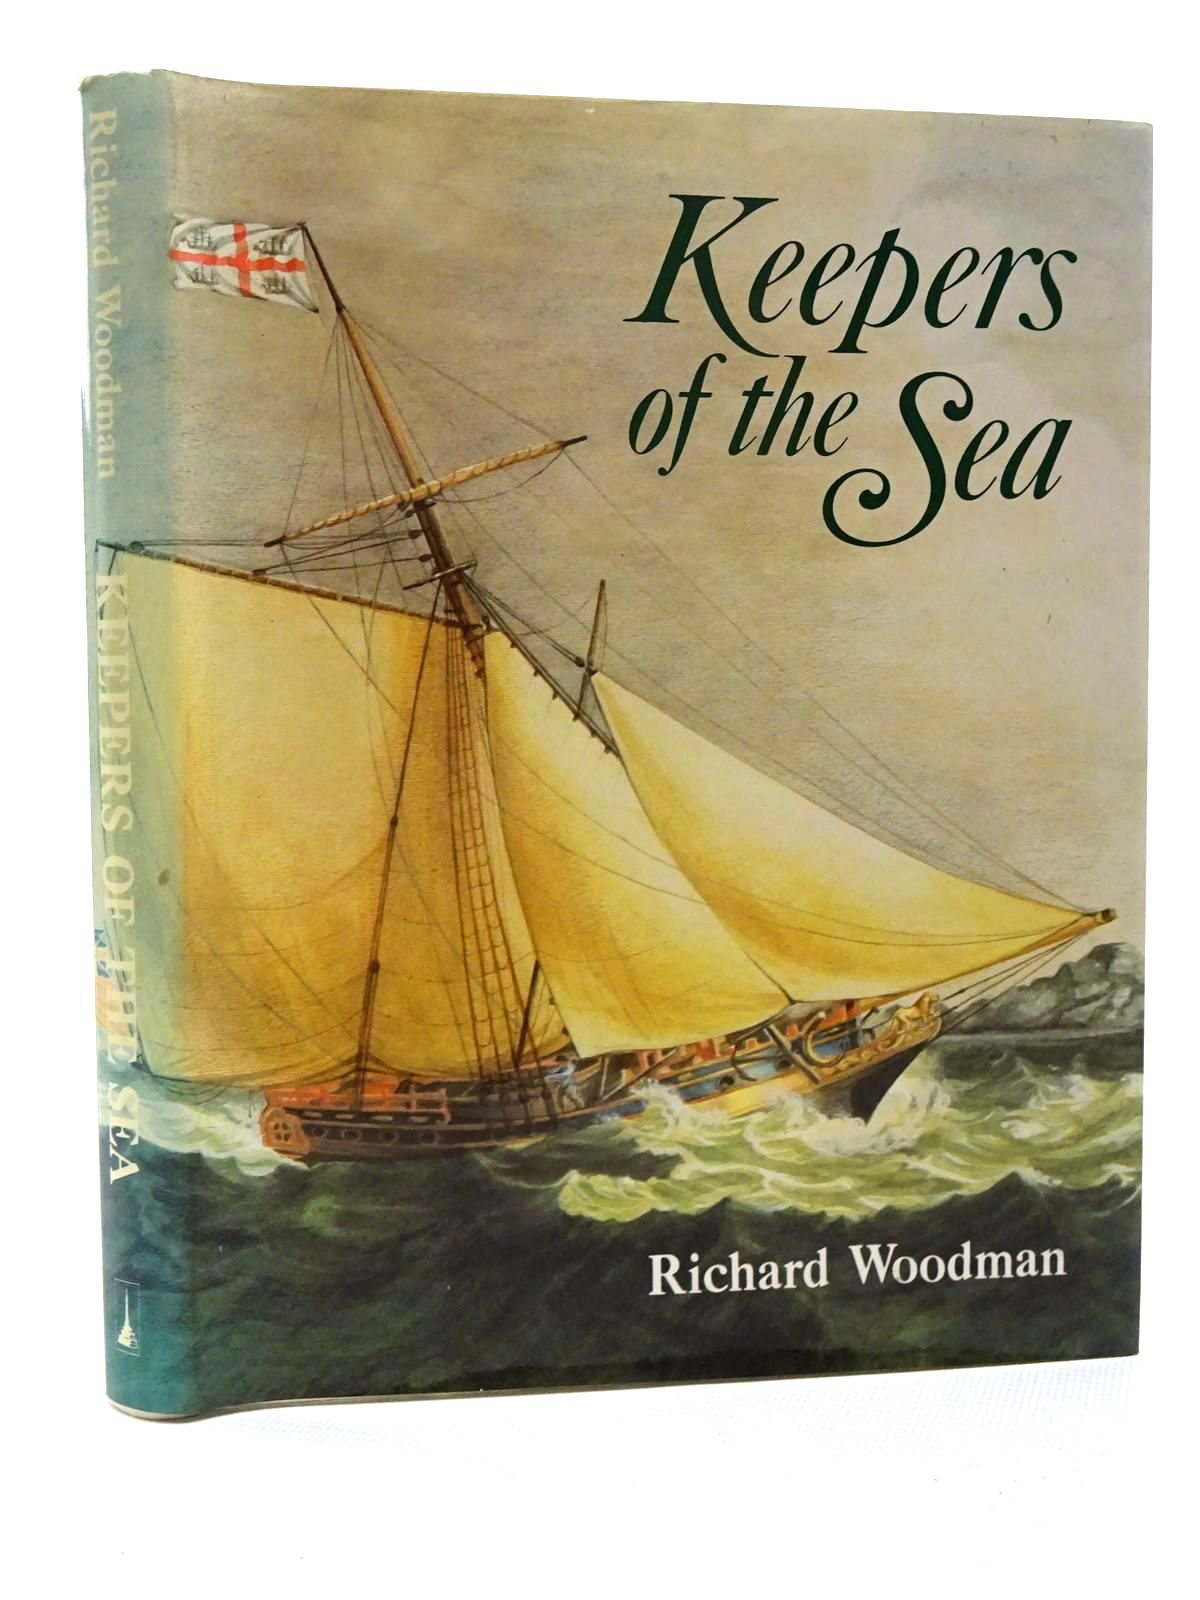 Photo of KEEPERS OF THE SEA A HISTORY OF THE YACHTS AND TENDERS OF TRINITY HOUSE written by Woodman, Richard published by Terence Dalton Limited (STOCK CODE: 2124190)  for sale by Stella & Rose's Books